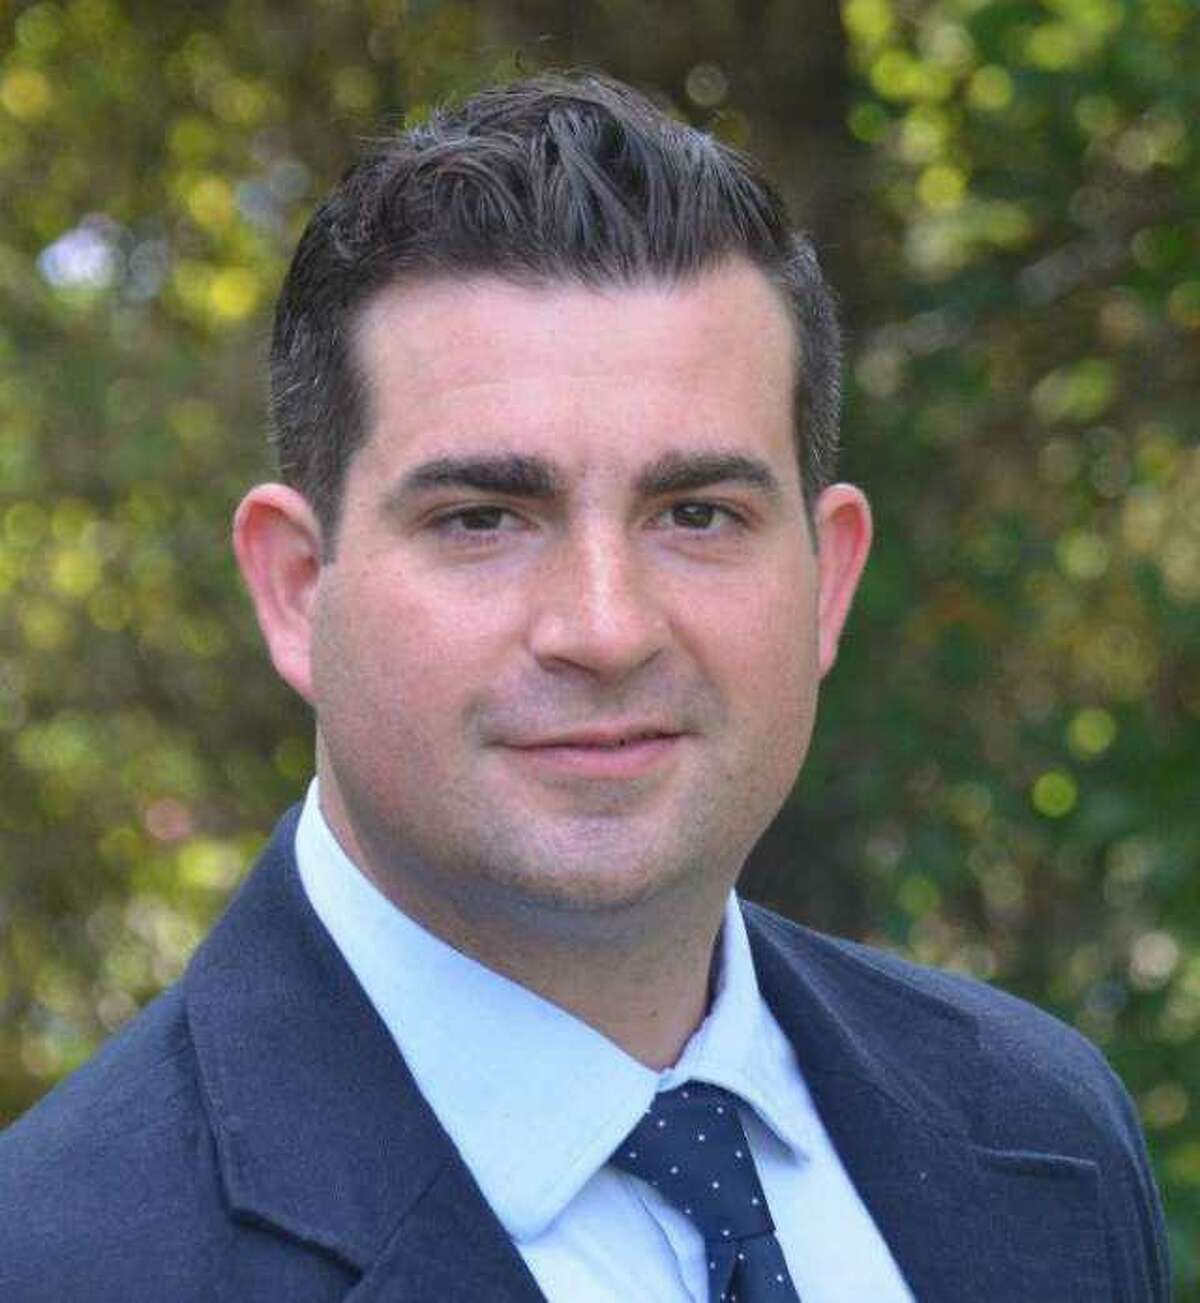 Brian Coppolo, the Bridgeport firefighter, who narrowly lost the mayoral election in Derby last November, has been appointed to Derby's Board of Apportionment and Taxation filling the vacancy created by the resignation of Walt Mayhew.